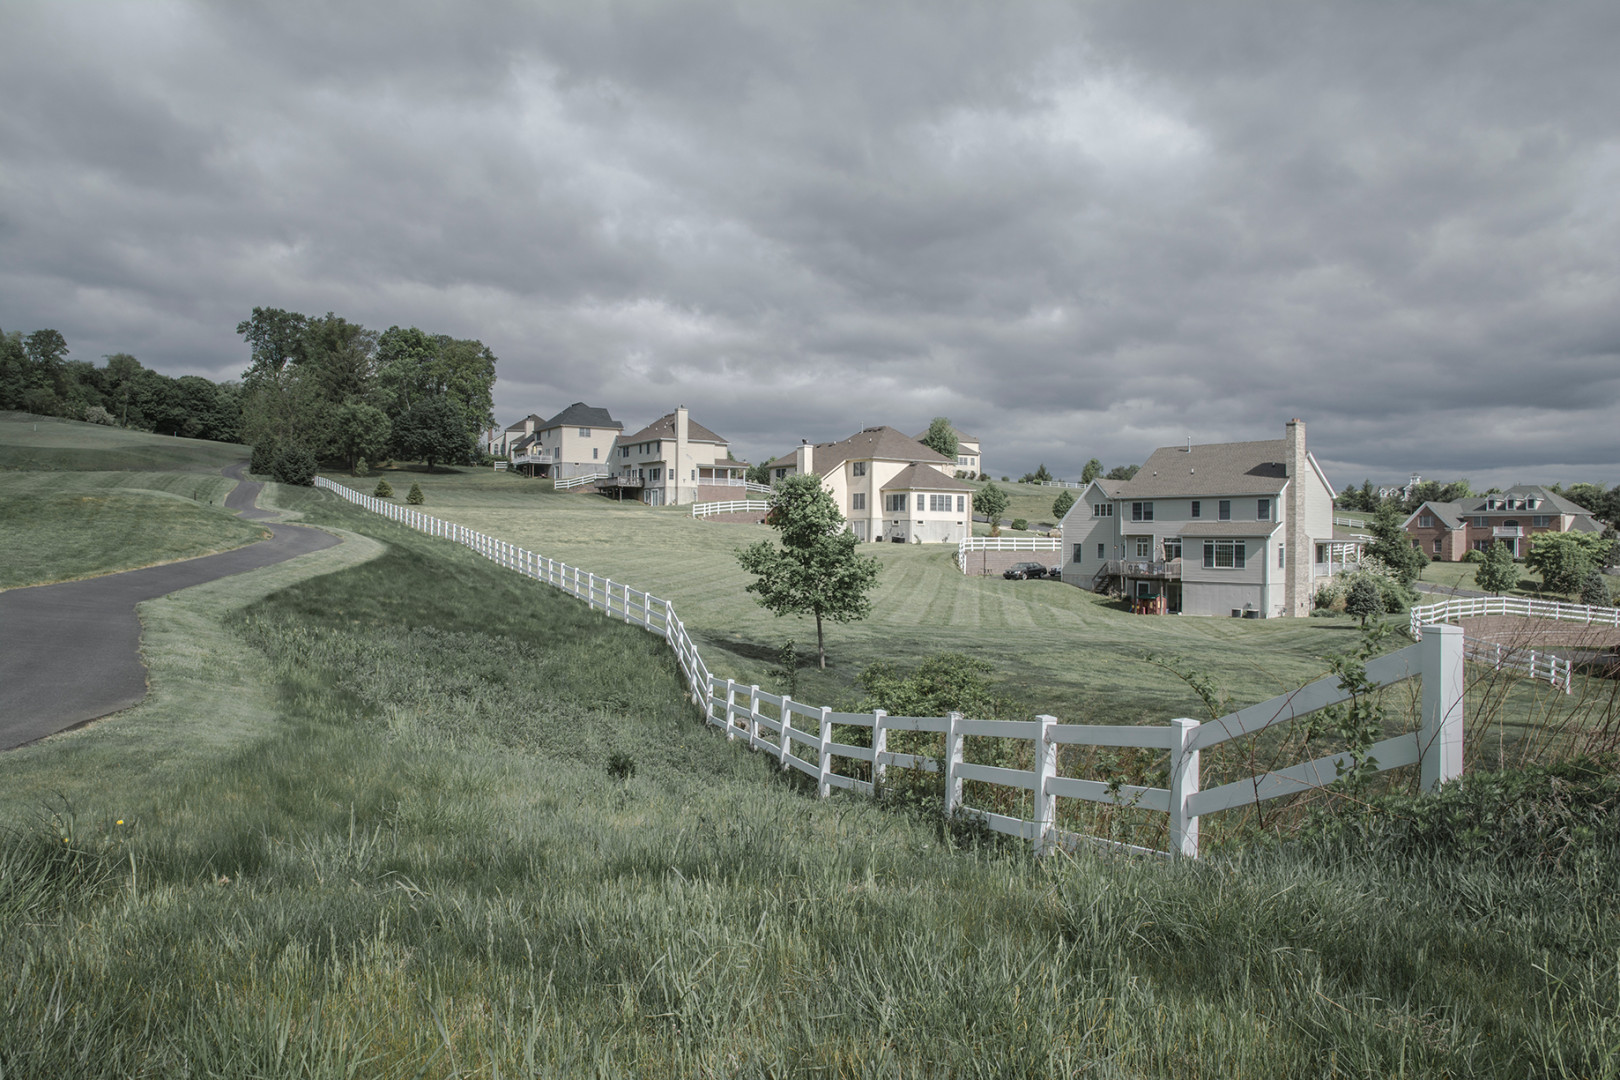 The back of a Suburban Development with a Golf Course